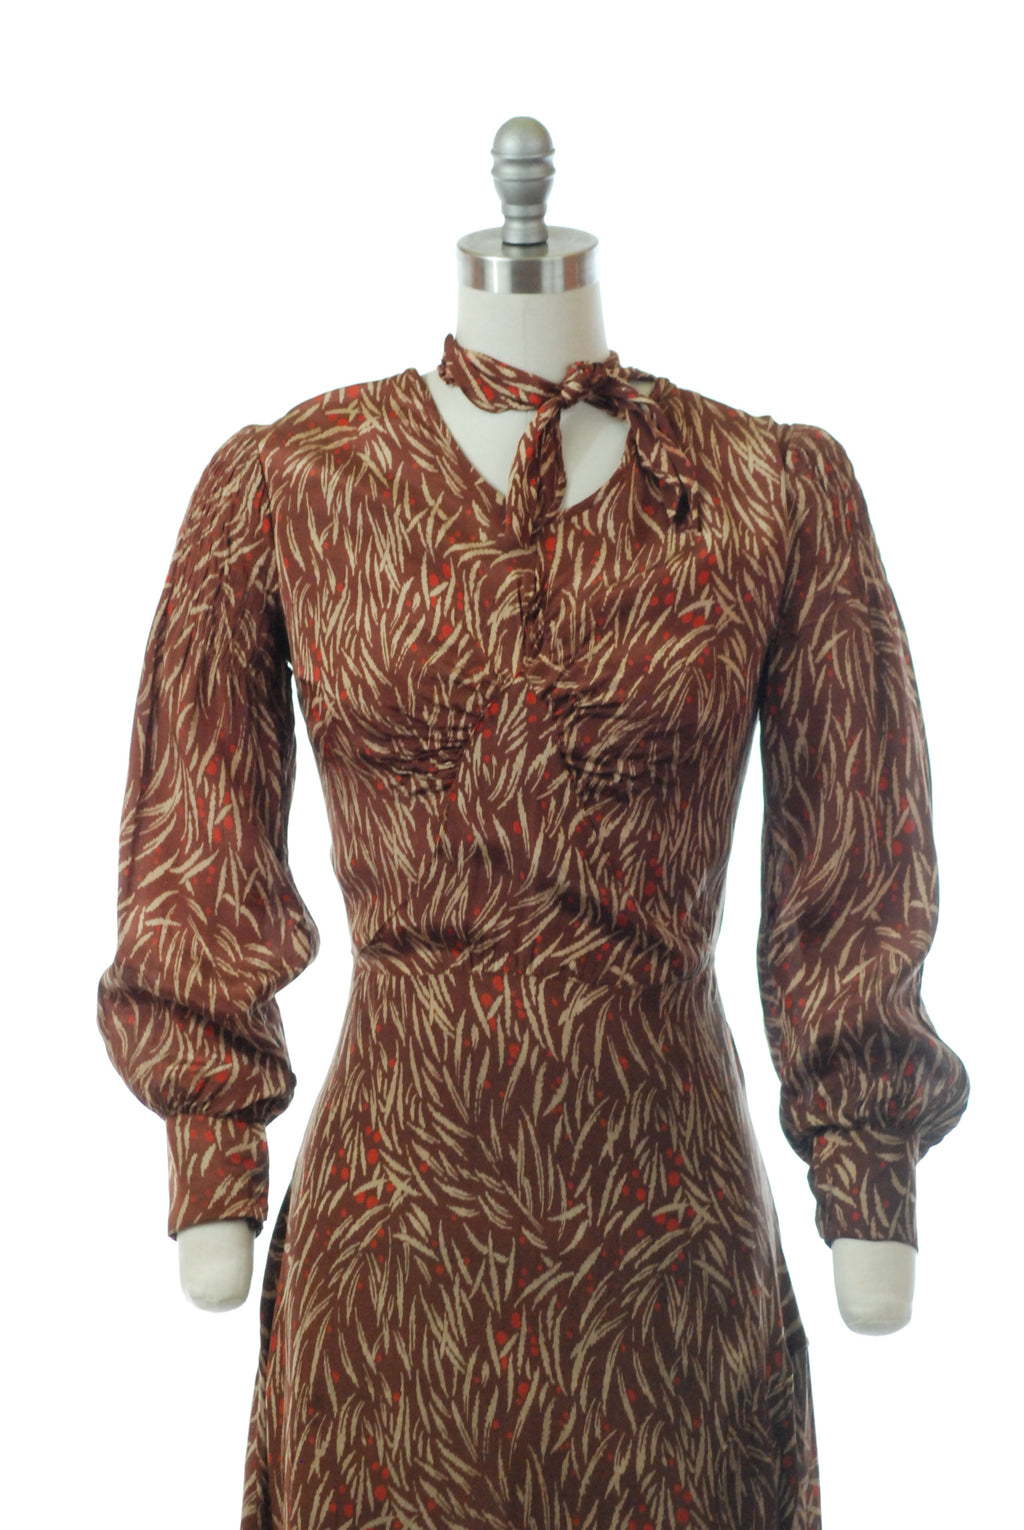 Chic 1930s Autumnal Day Dress in a Printed Rayon-Celanese with Neck Tie